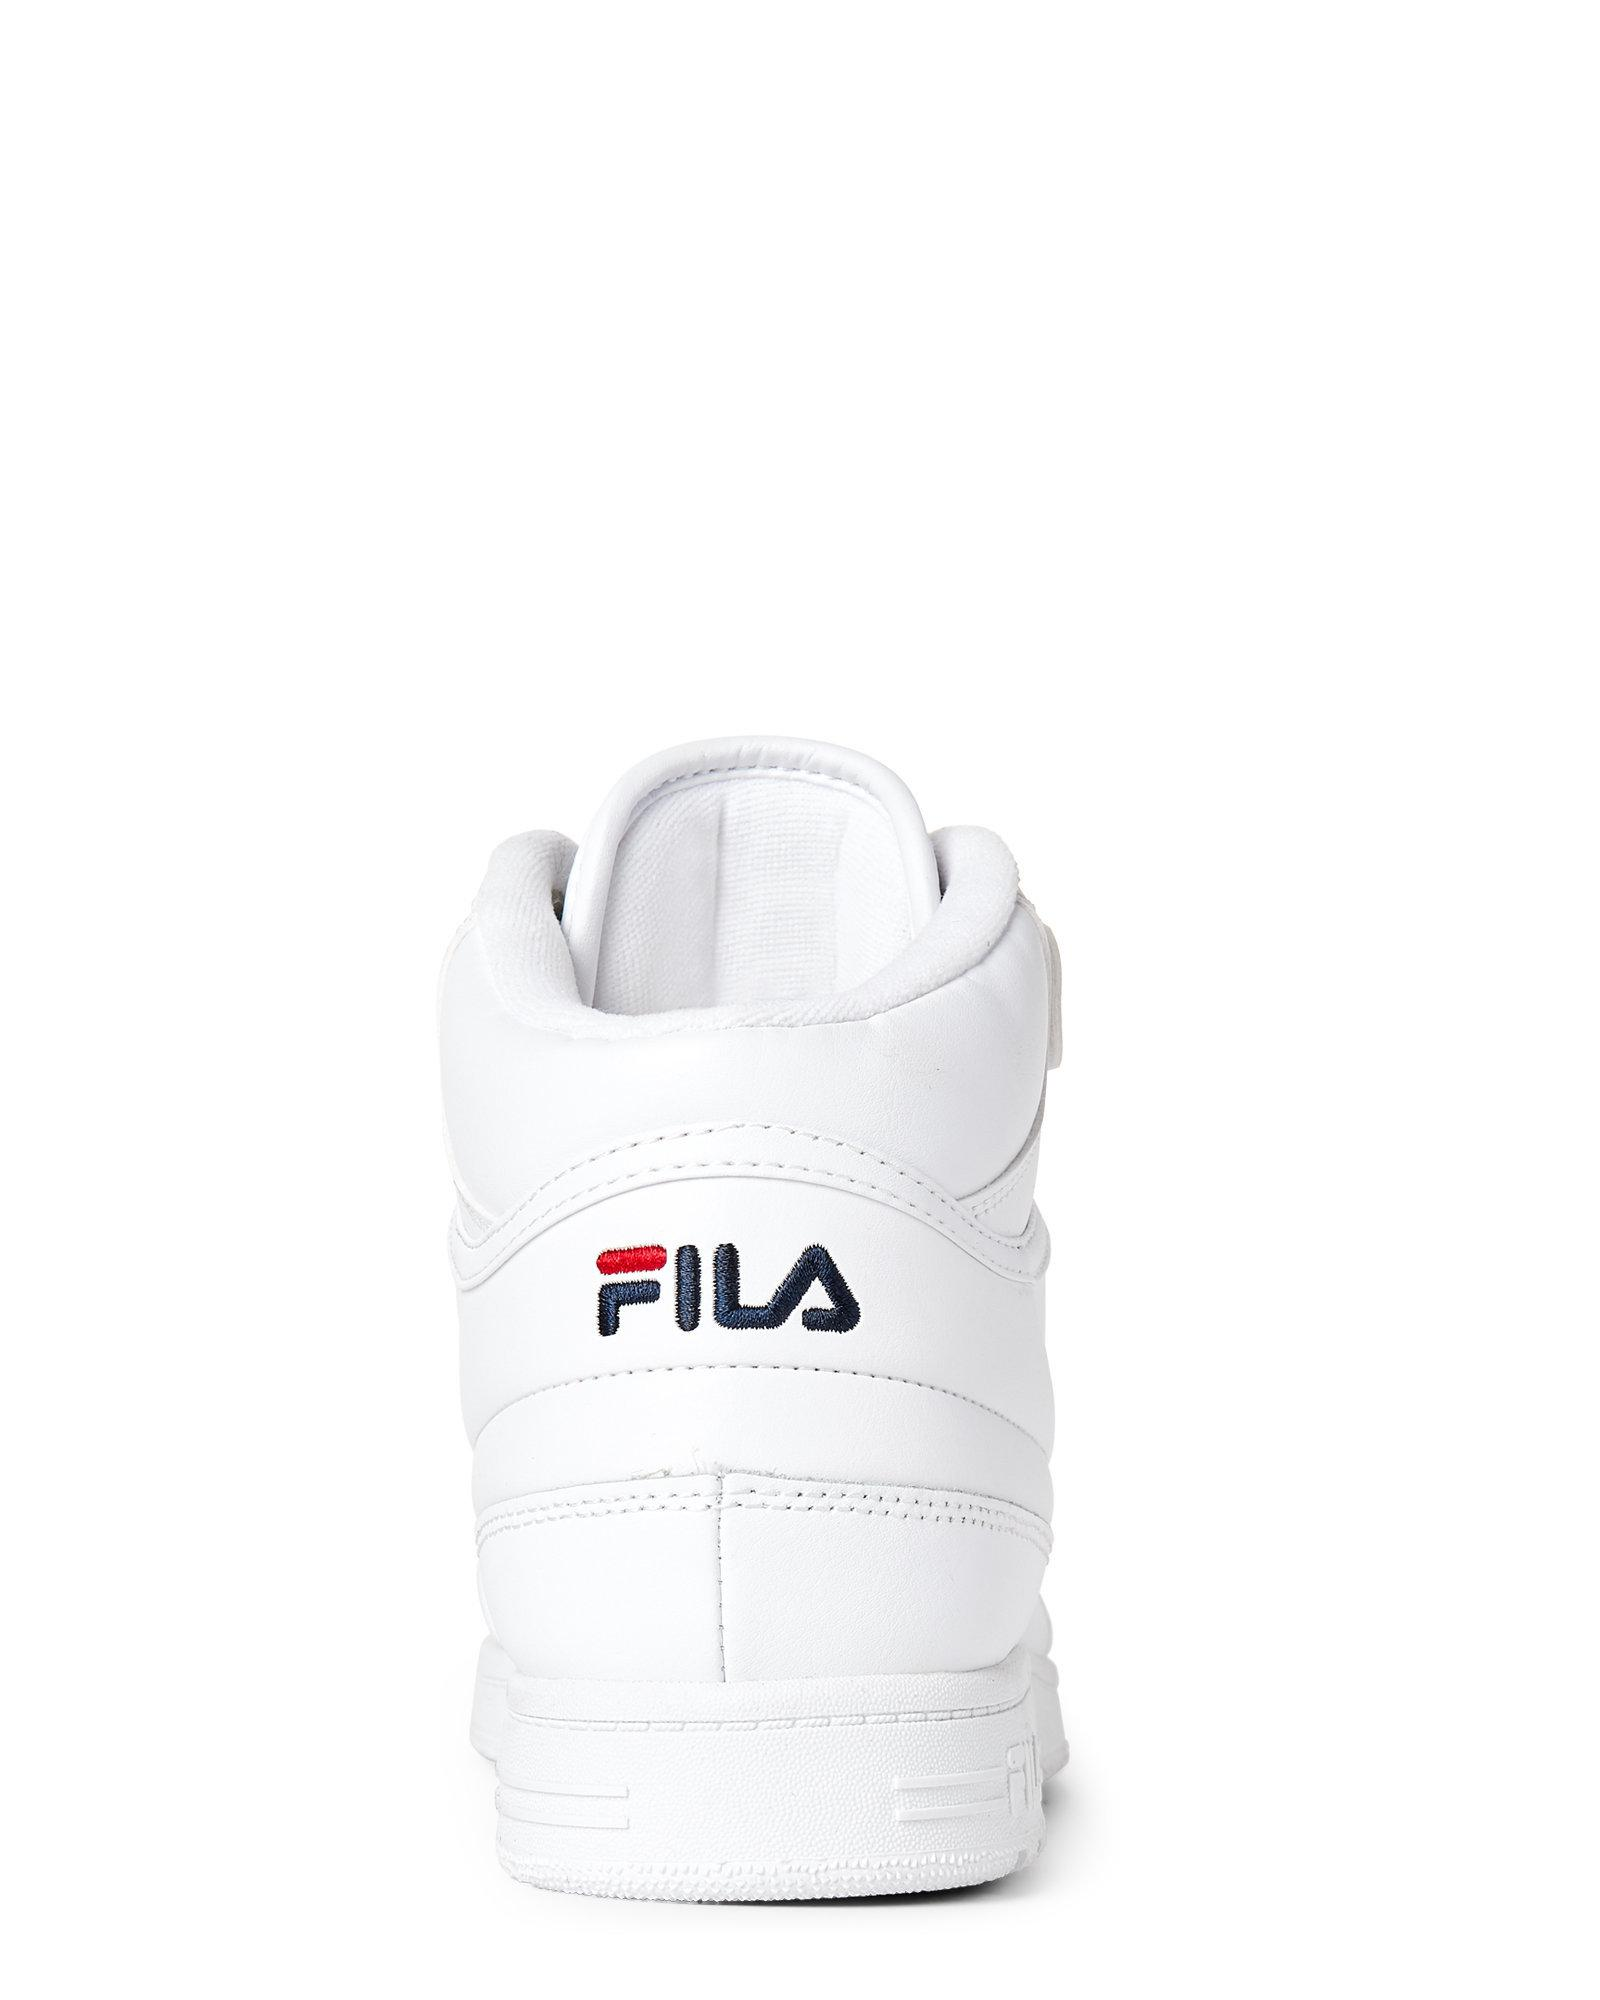 Fila White Bbn 86 High Top Sneakers for men